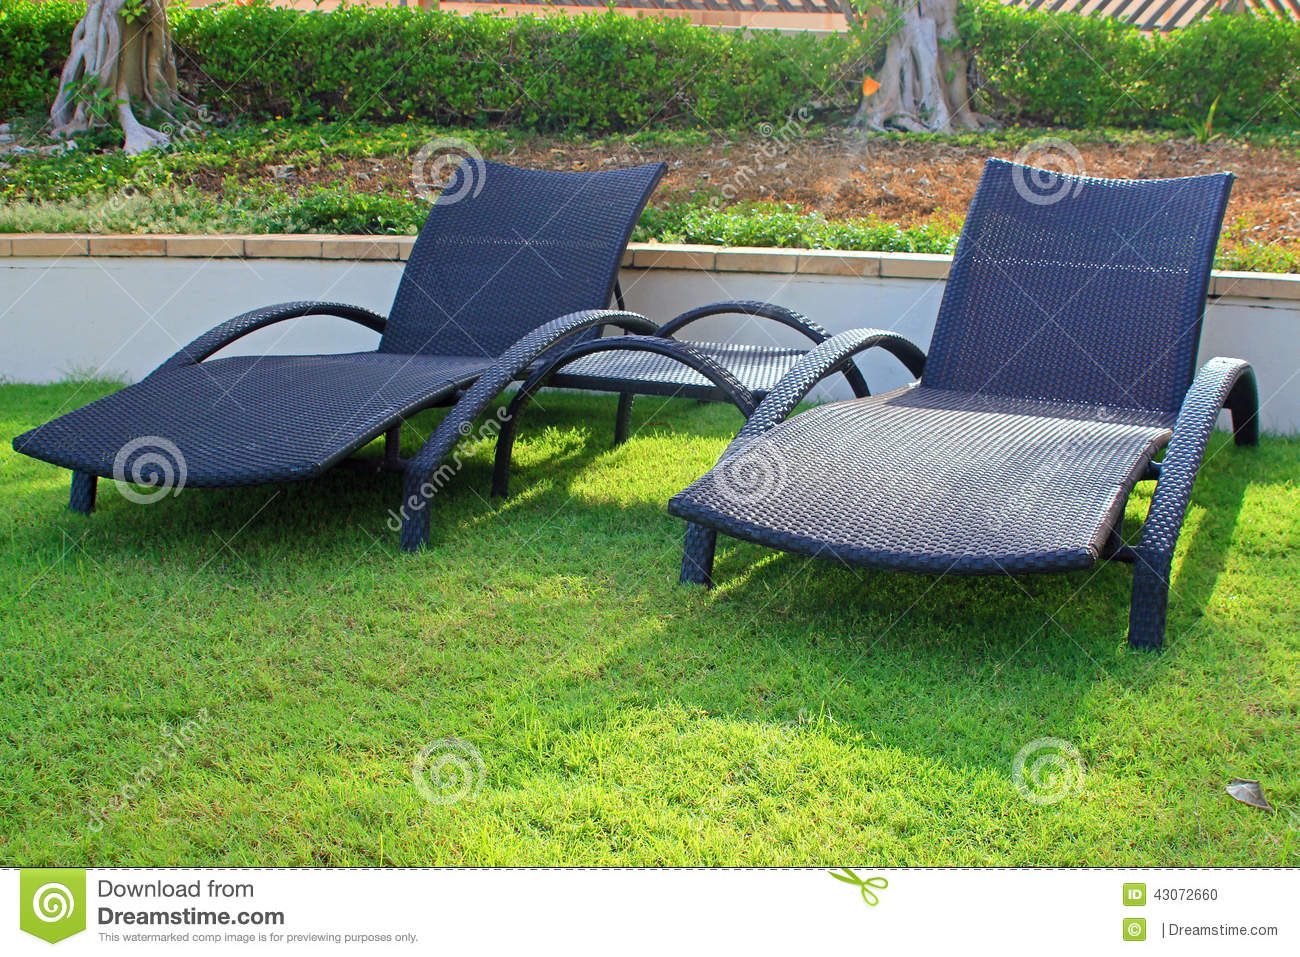 Wicker sun loungers